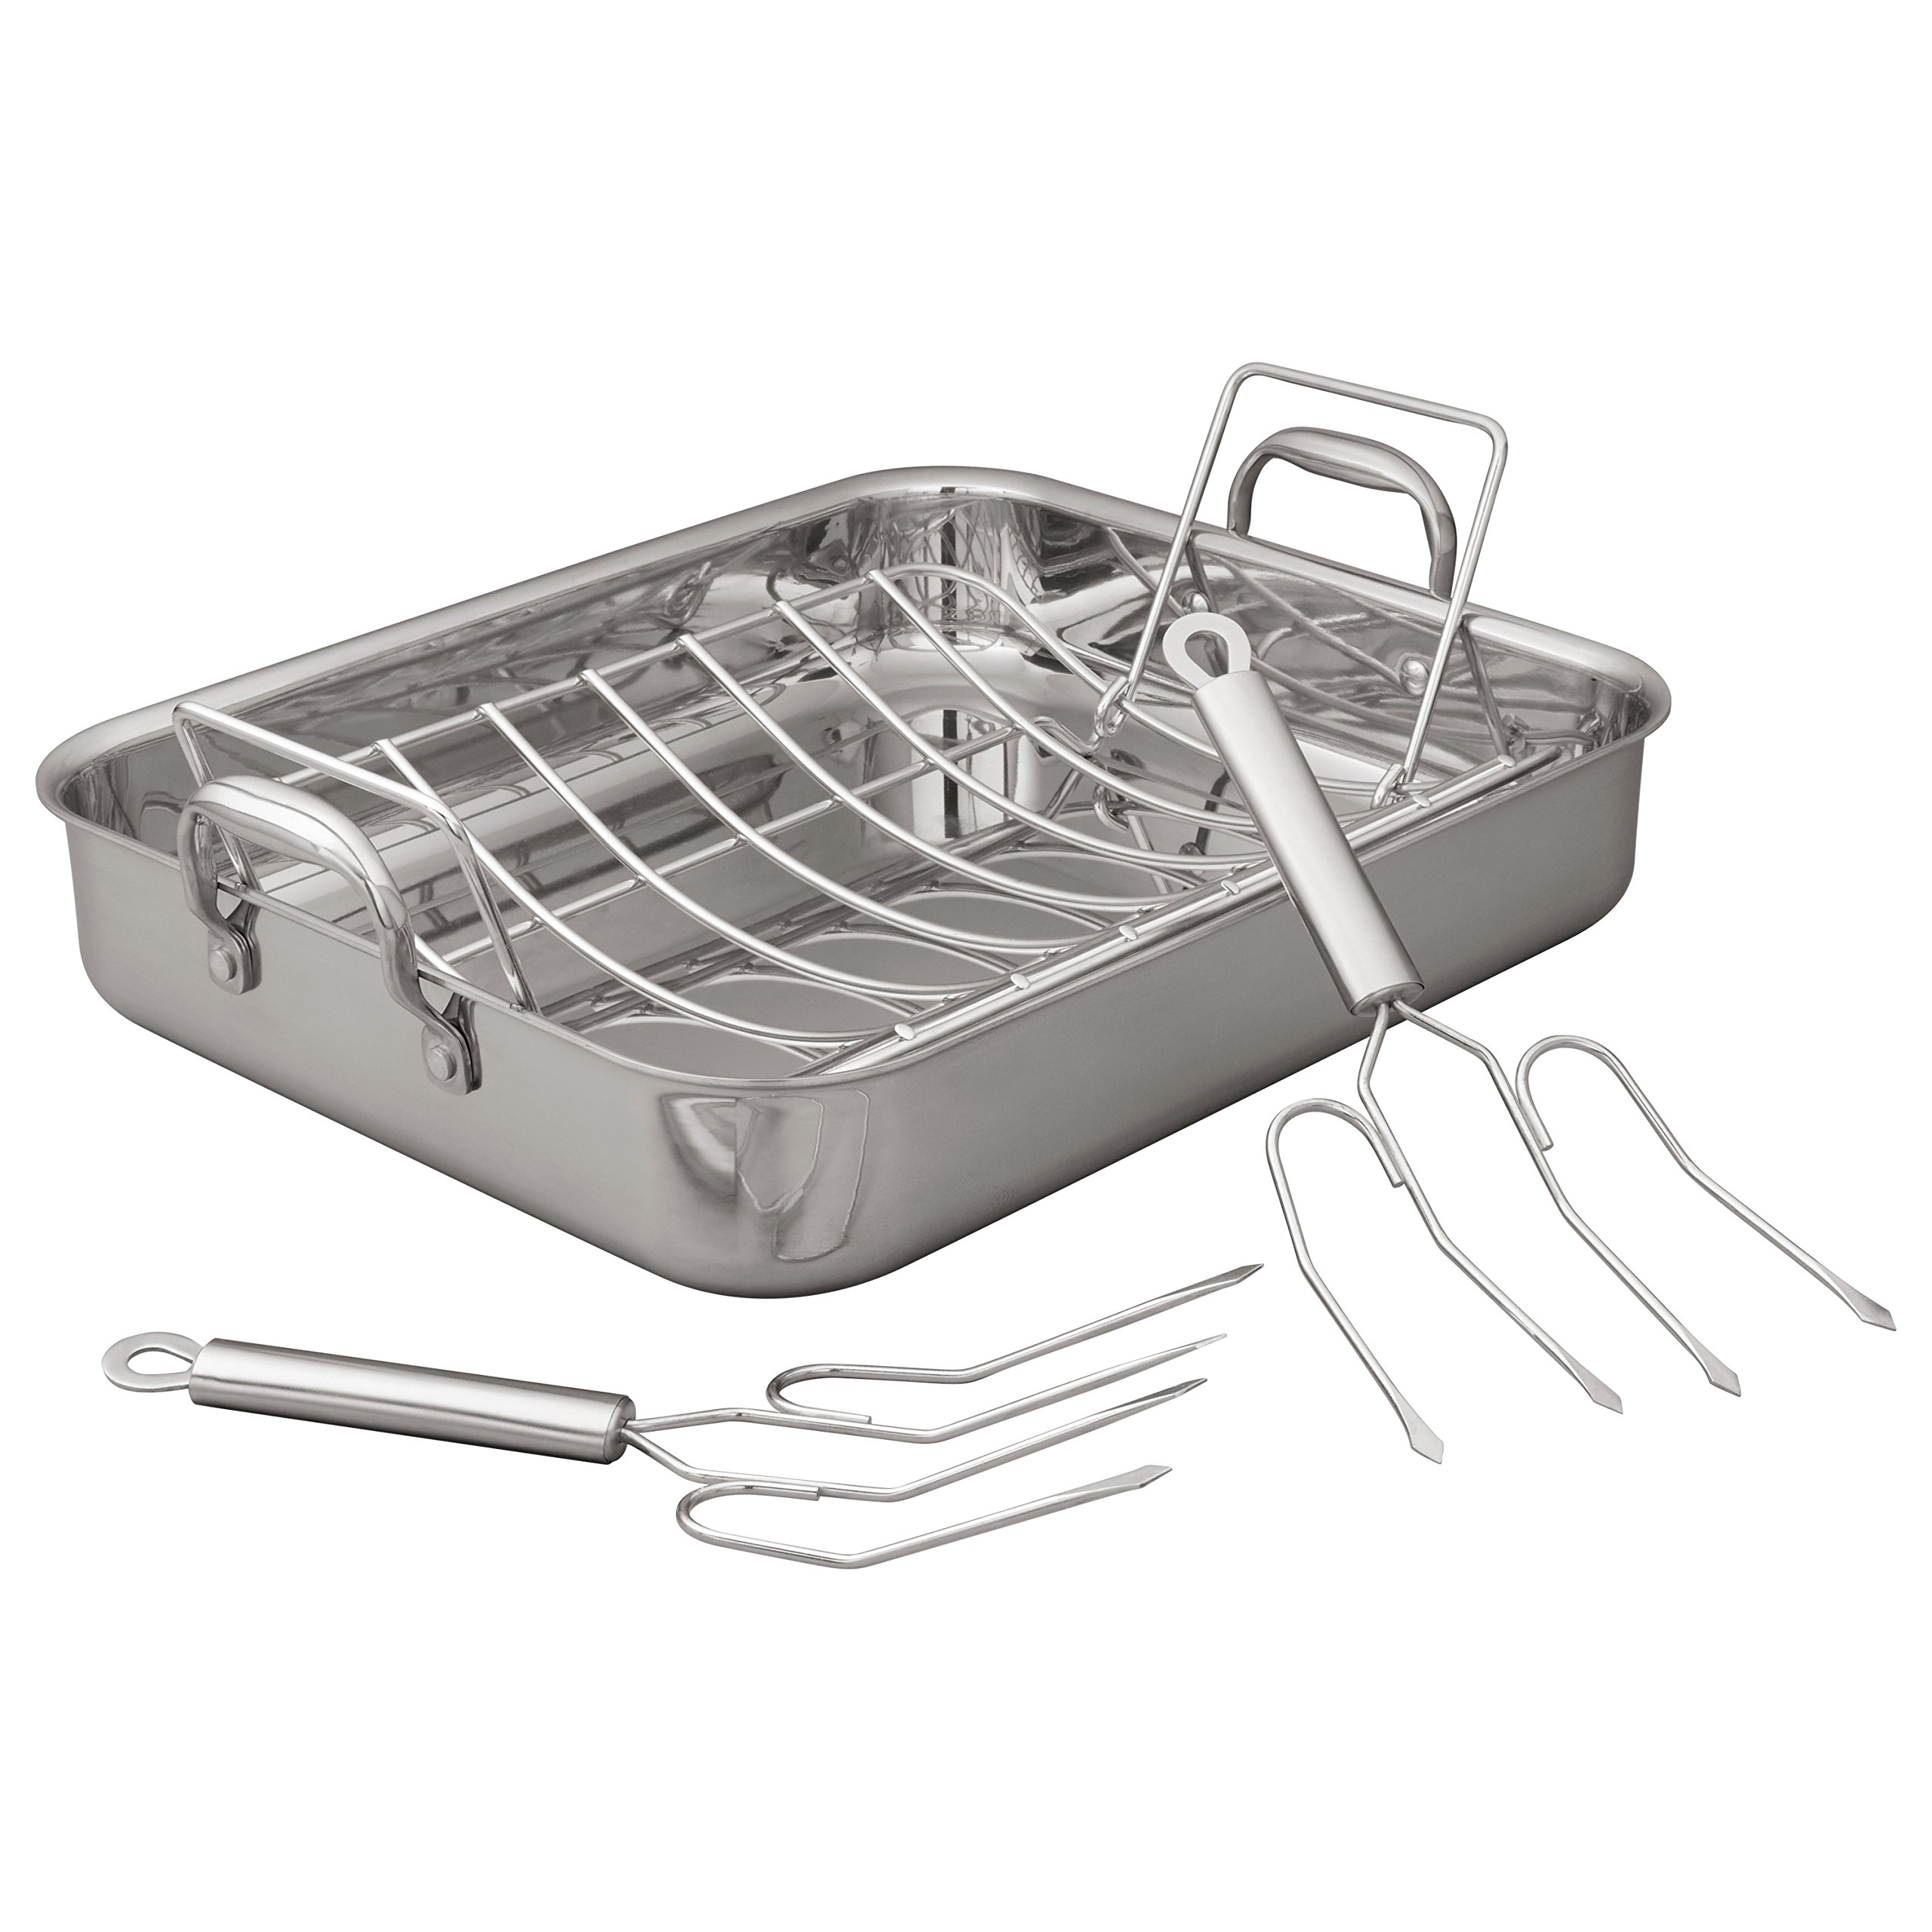 Stone & Beam Tri-Ply Stainless Steel Roasting Pan with Two Roasting Forks, 16-Inch by Stone & Beam